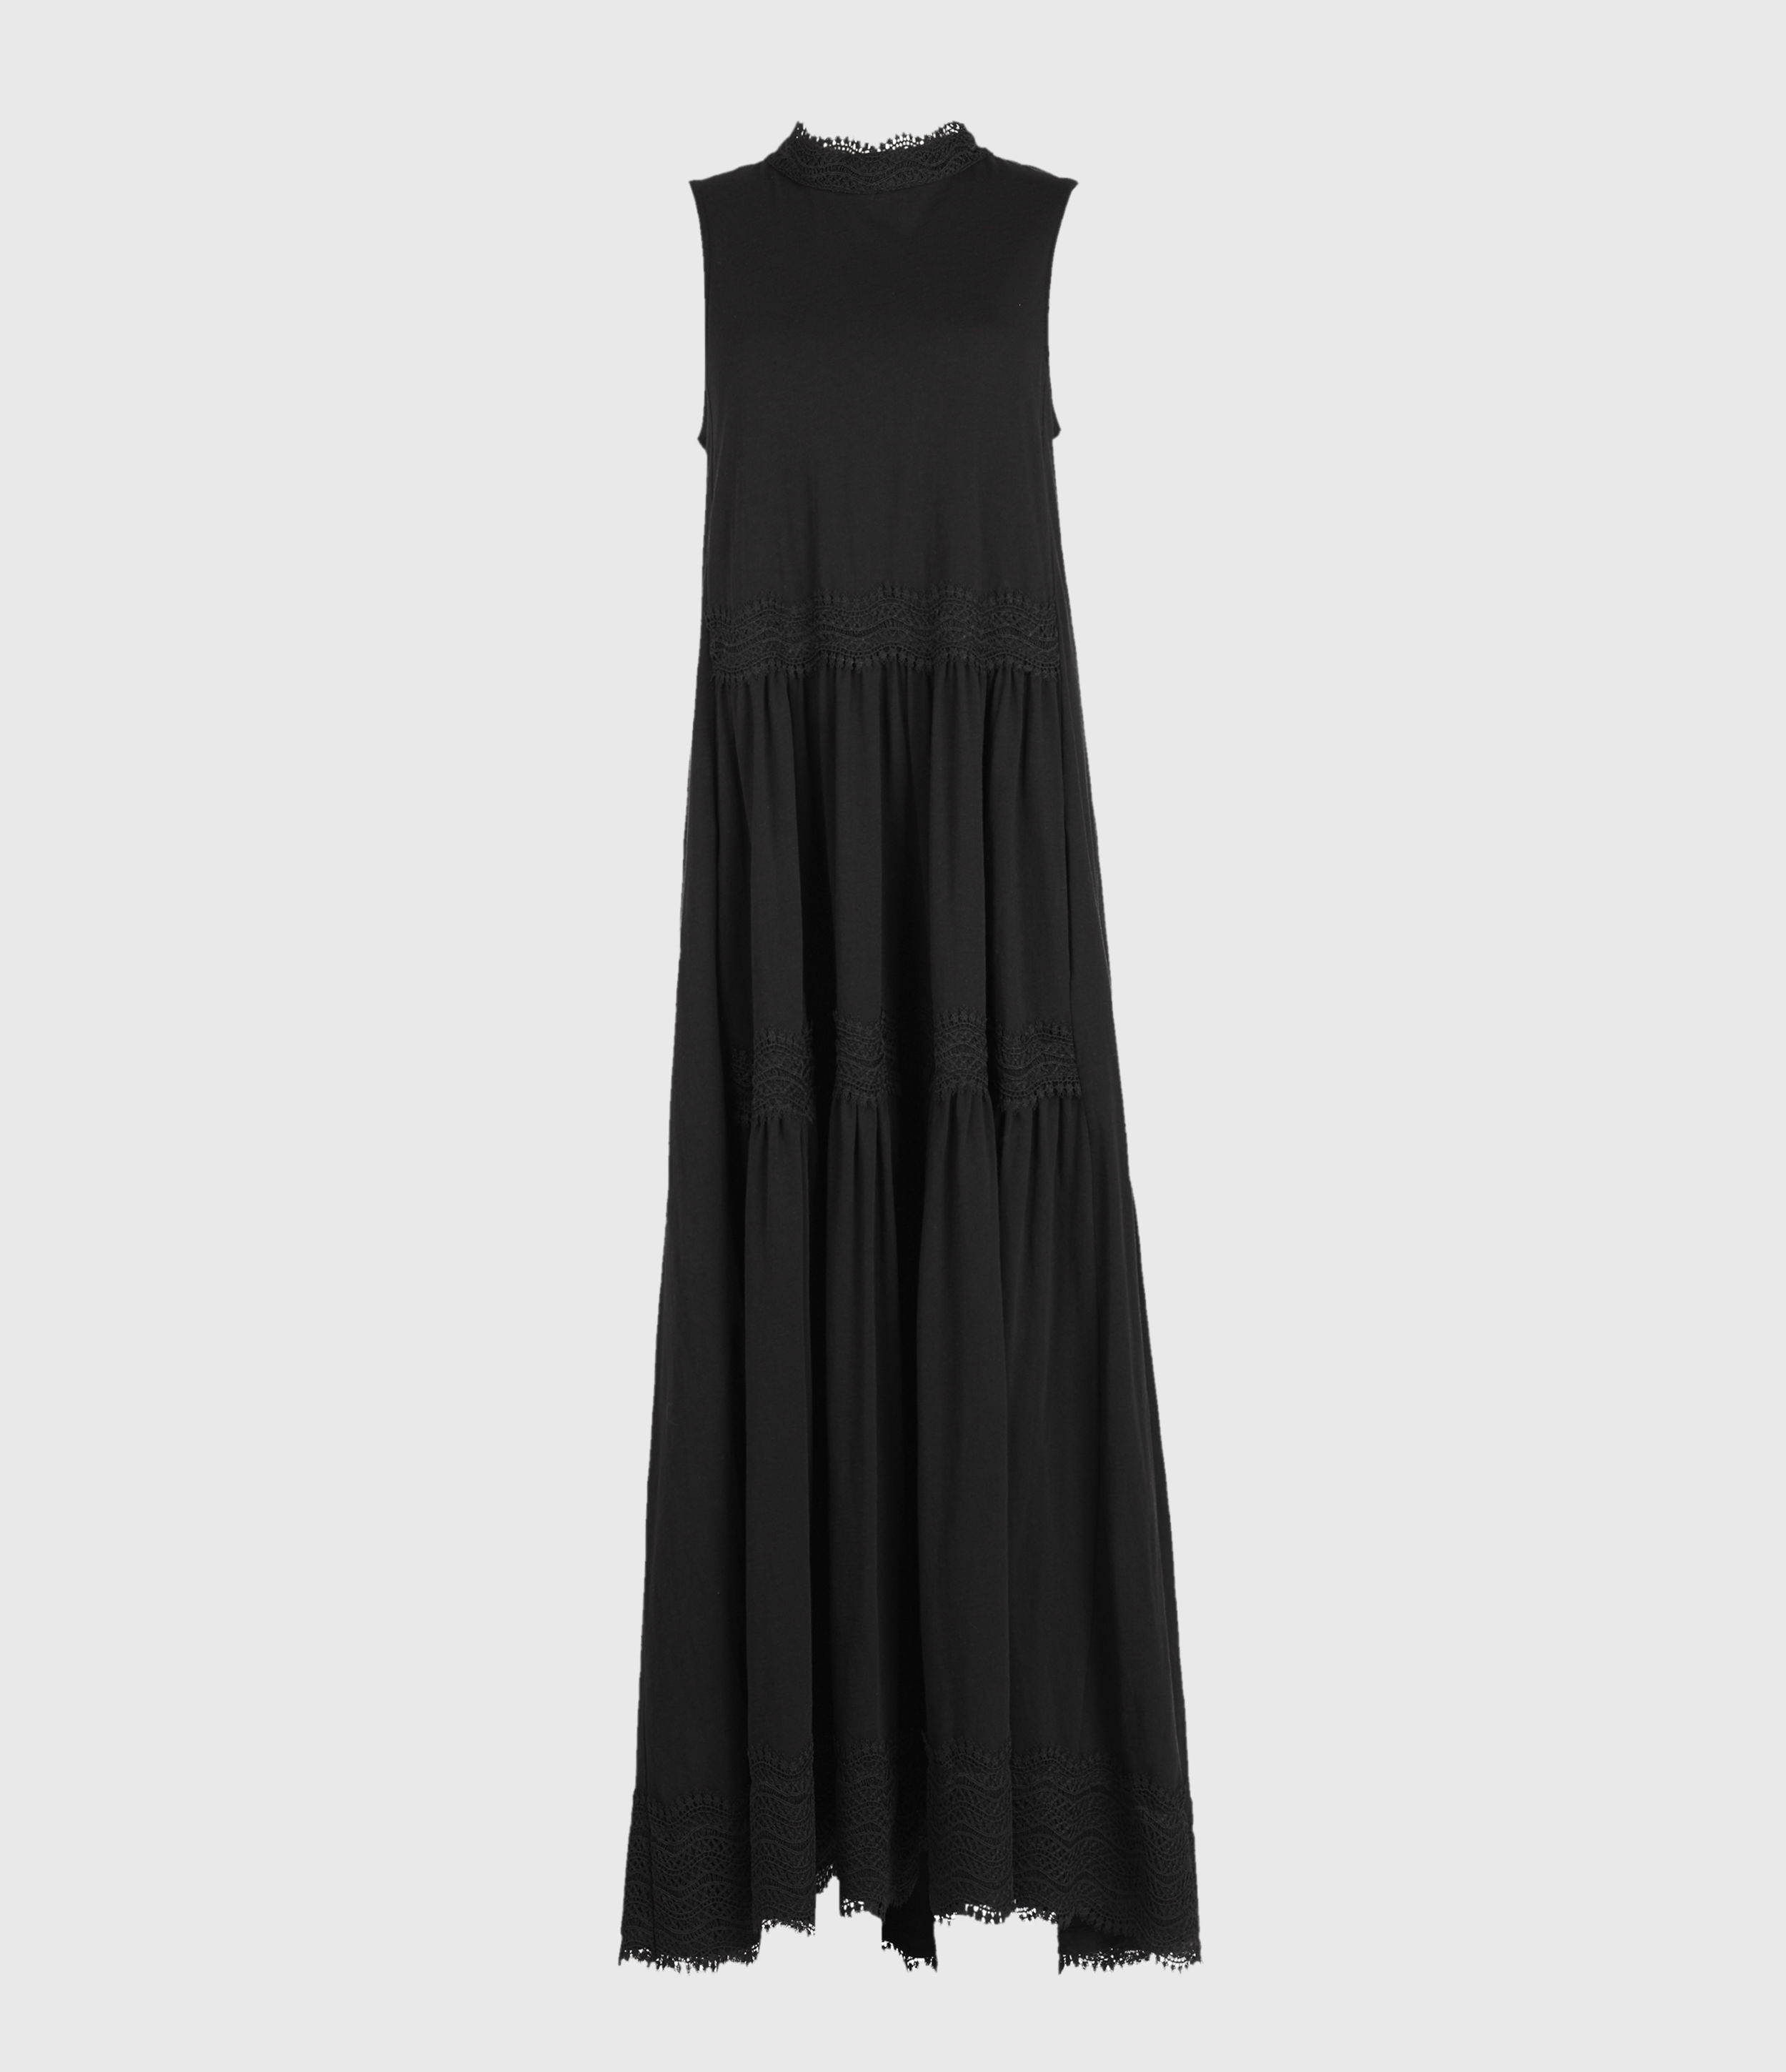 AllSaints Tier Dress